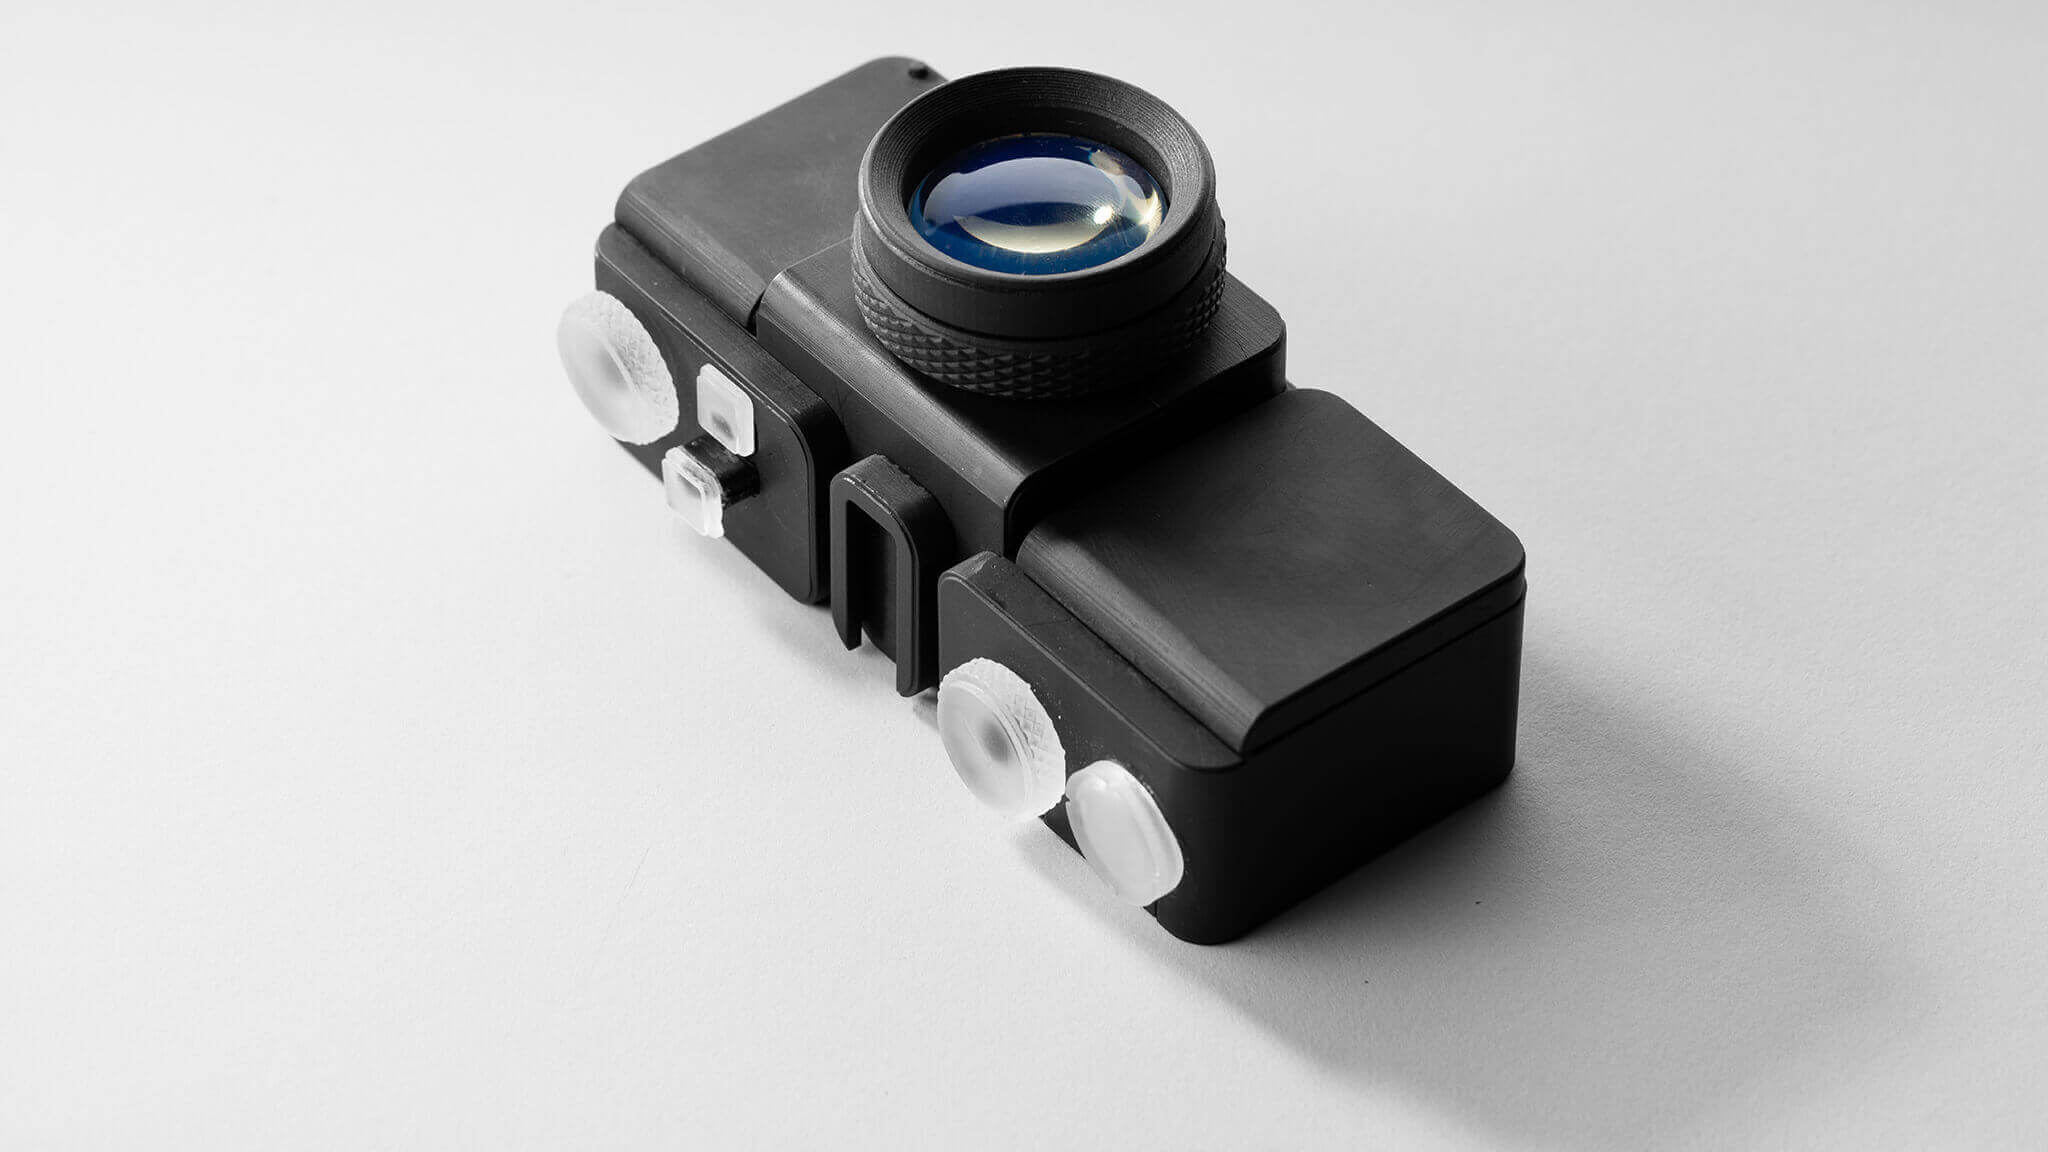 3D Printed Camera Lenses with Stereolithography | All3DP